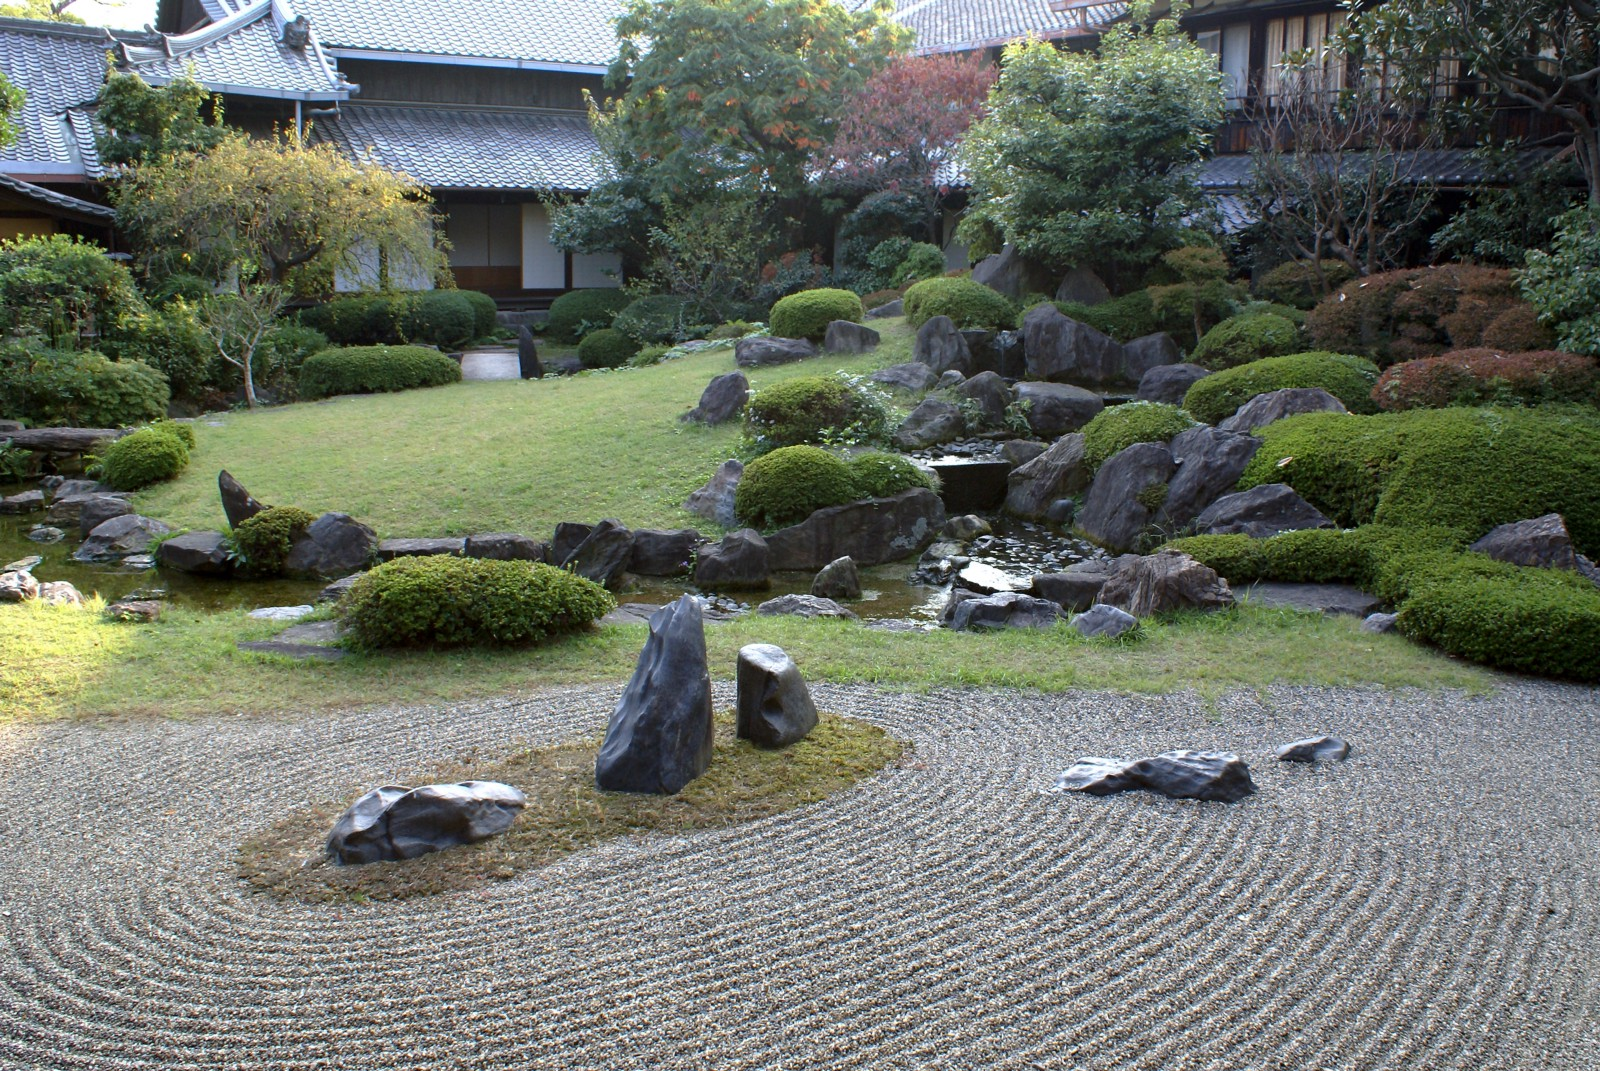 Backyard Zen Garden how to create a zen garden in your backyard – bob hobbs – medium